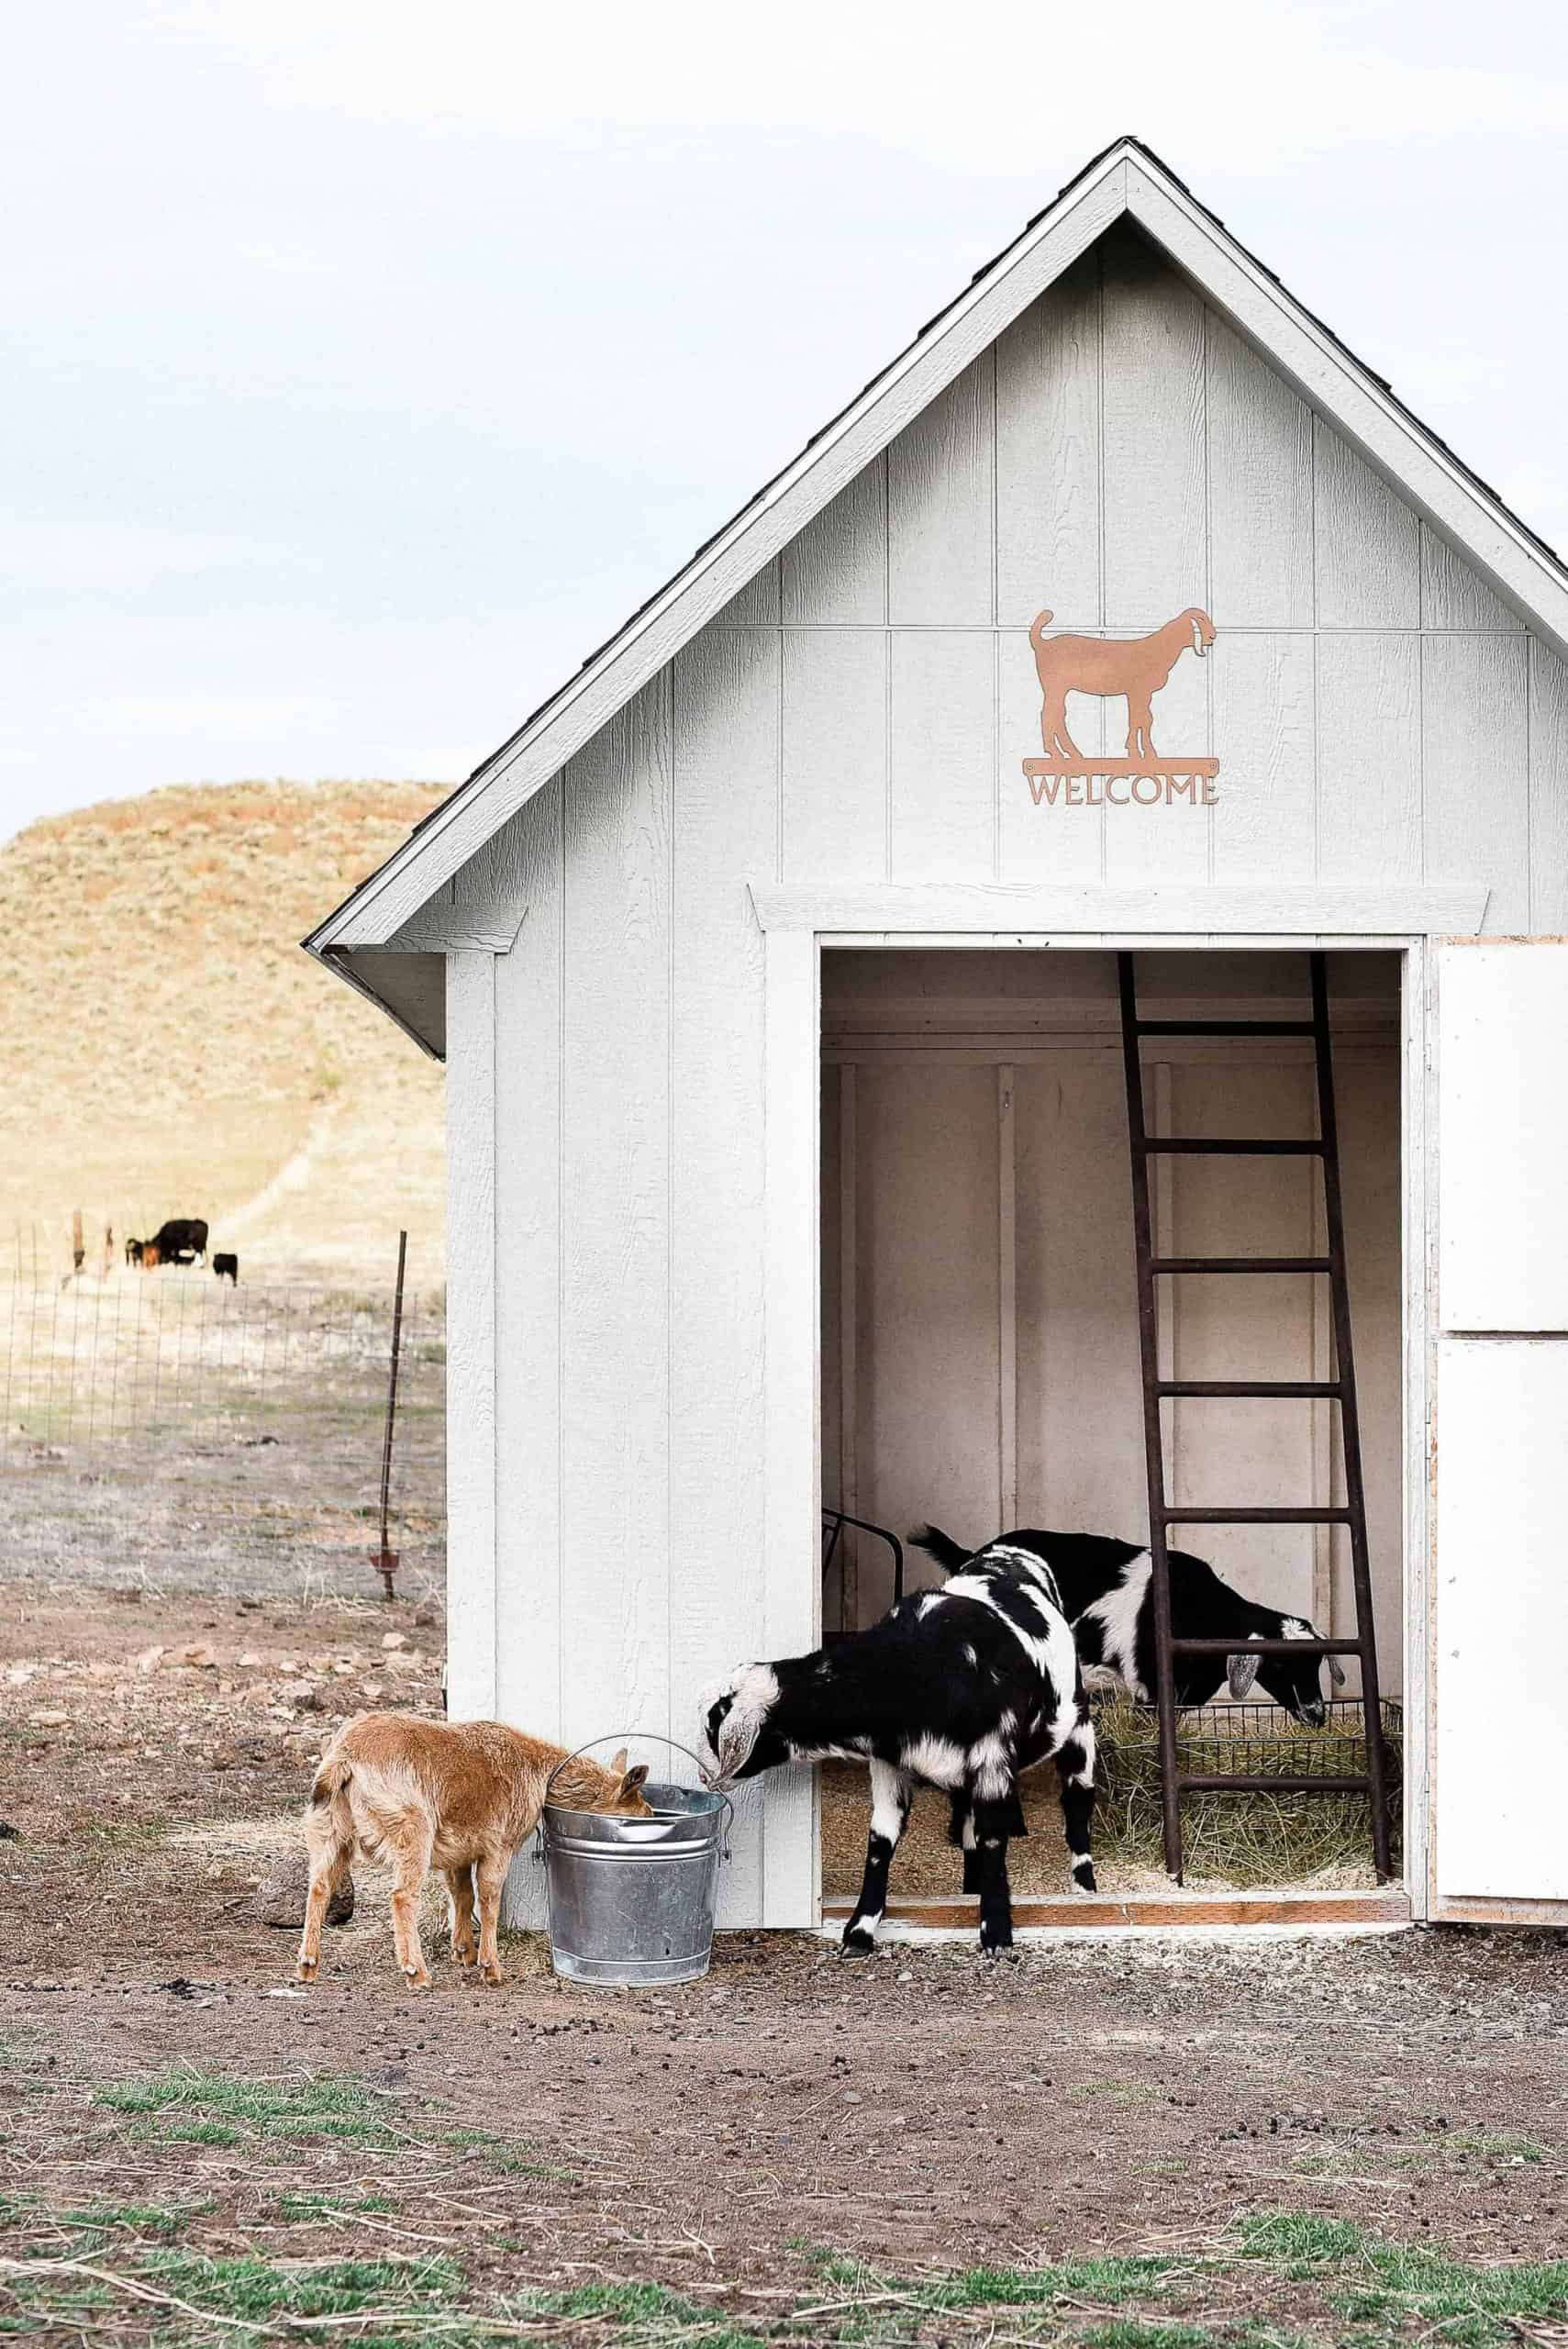 One of the many questions I receive about raising goats and keeping goats as pets is: How do you keep the goat barn clean? Today I am going to share how I keep our goat barn clean and how we keep our pet goats healthy!